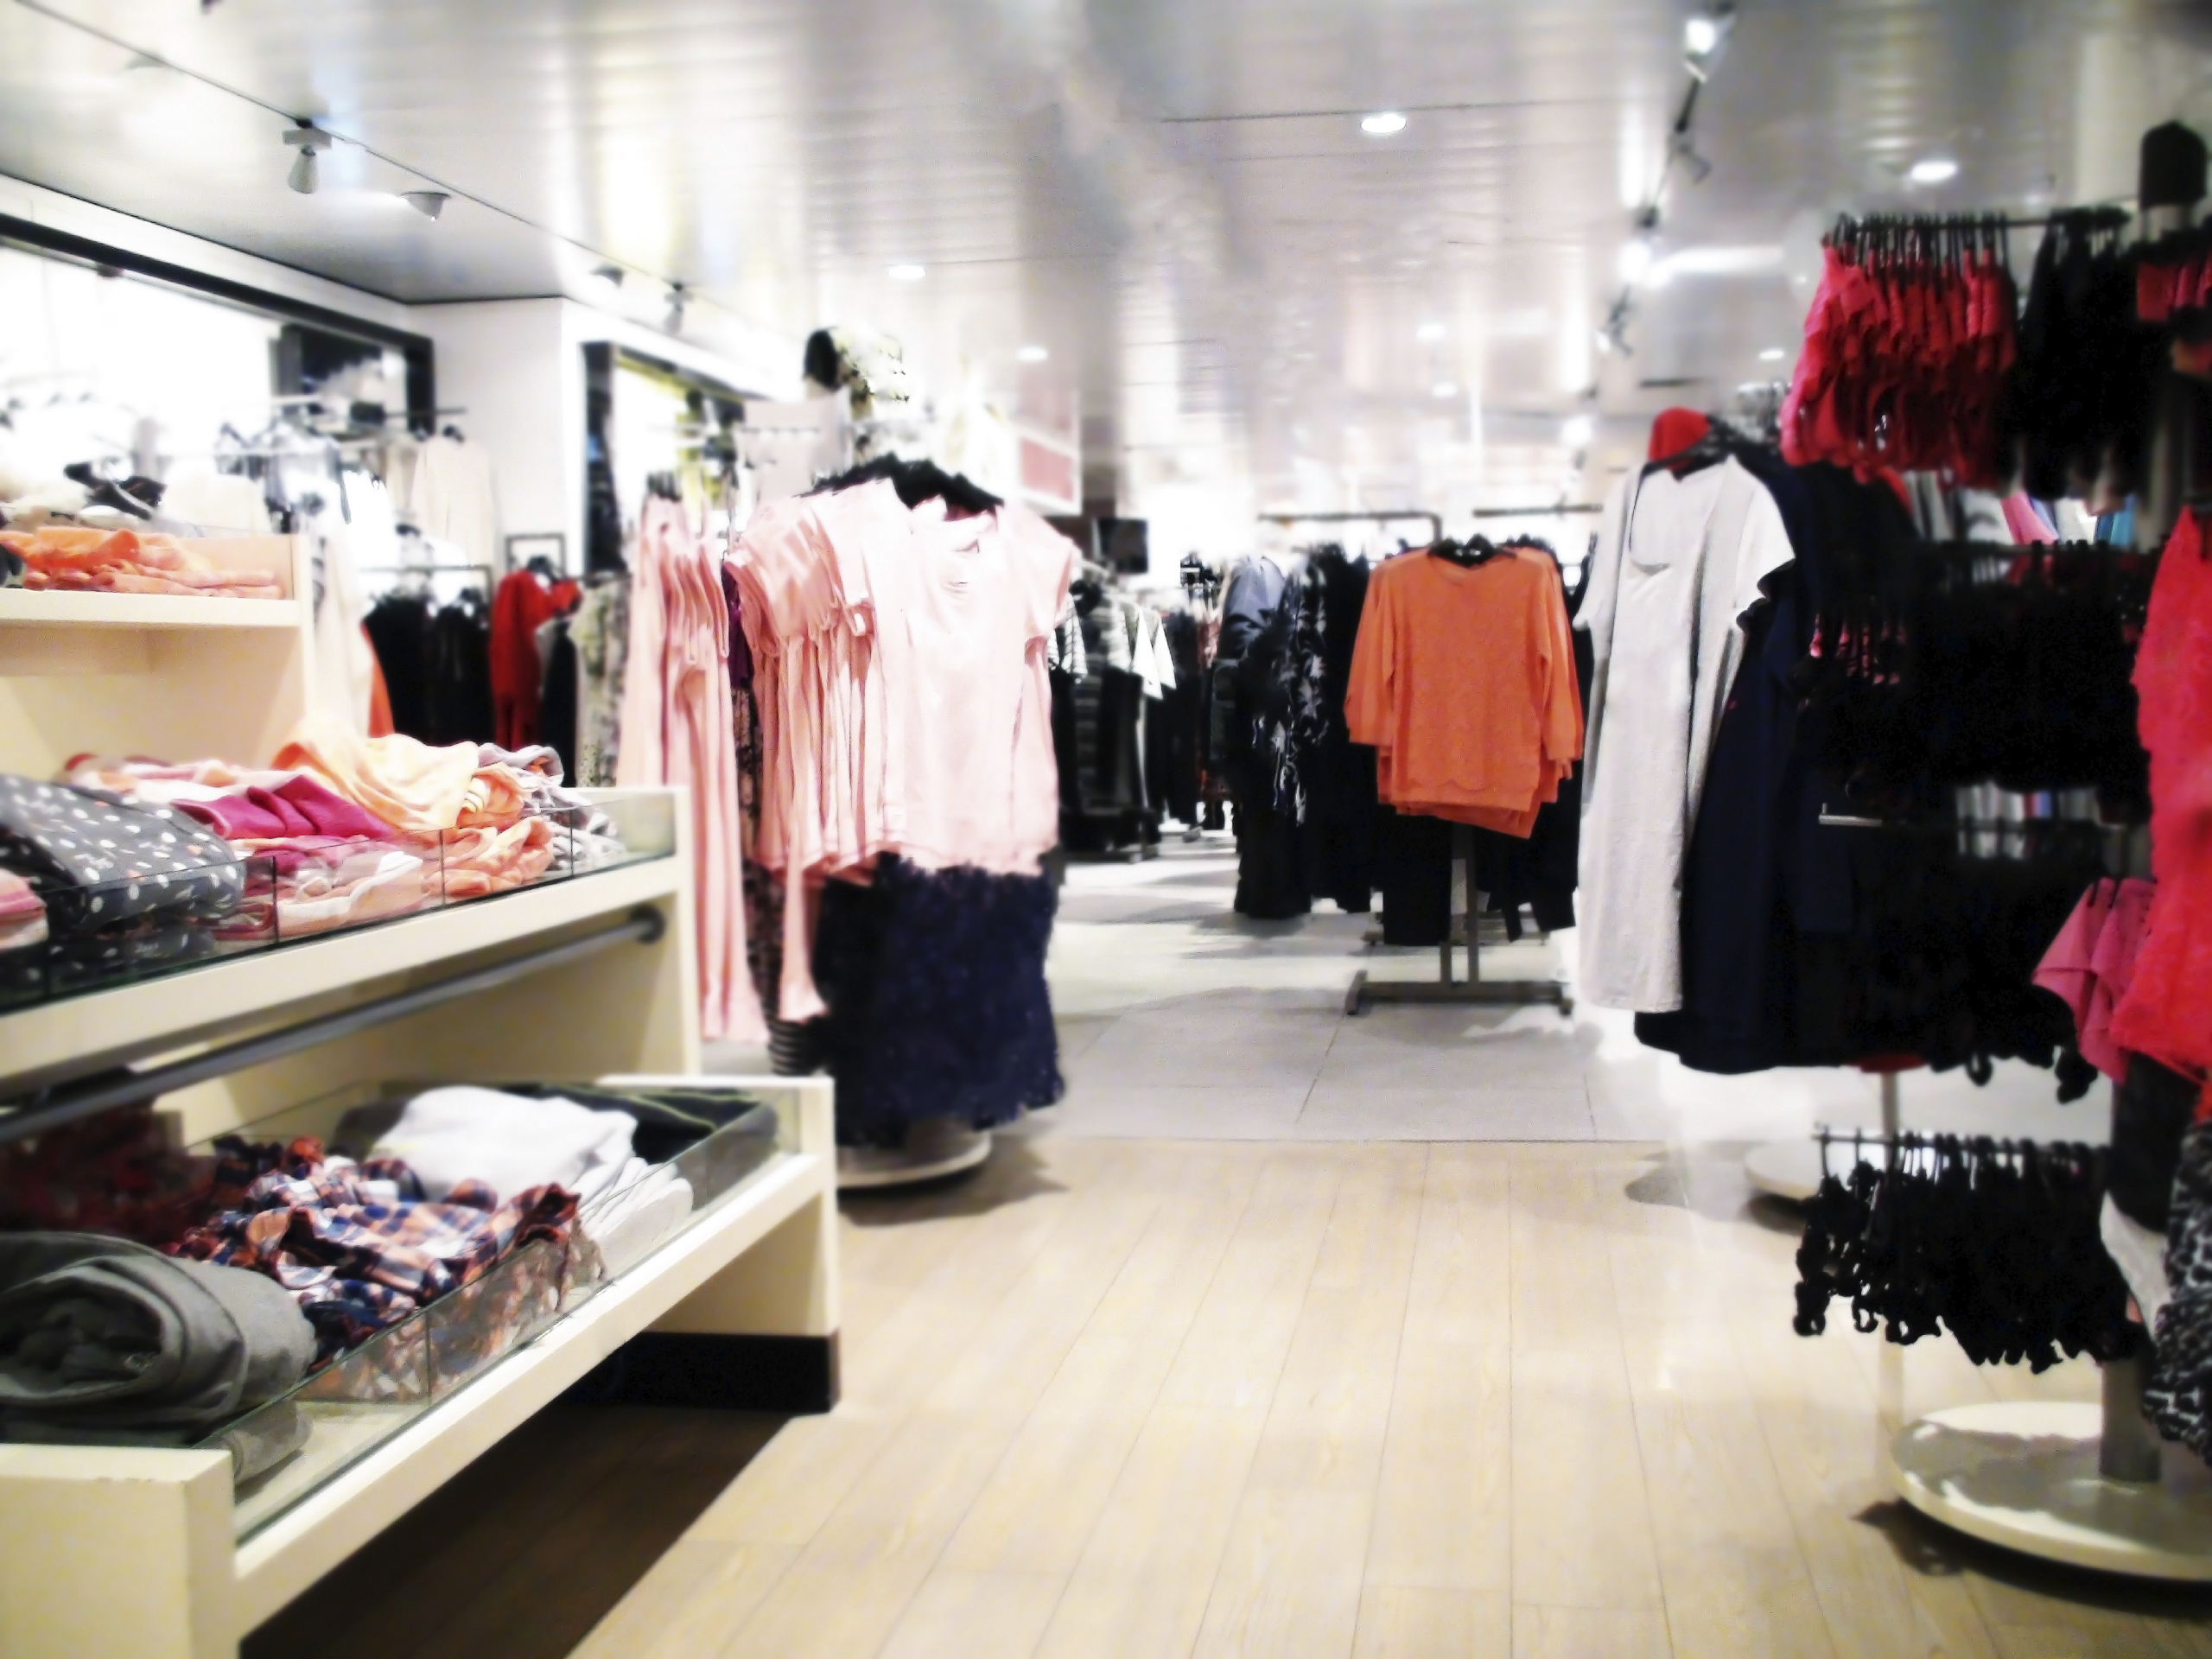 Which are the popular shopping stores for clothing?